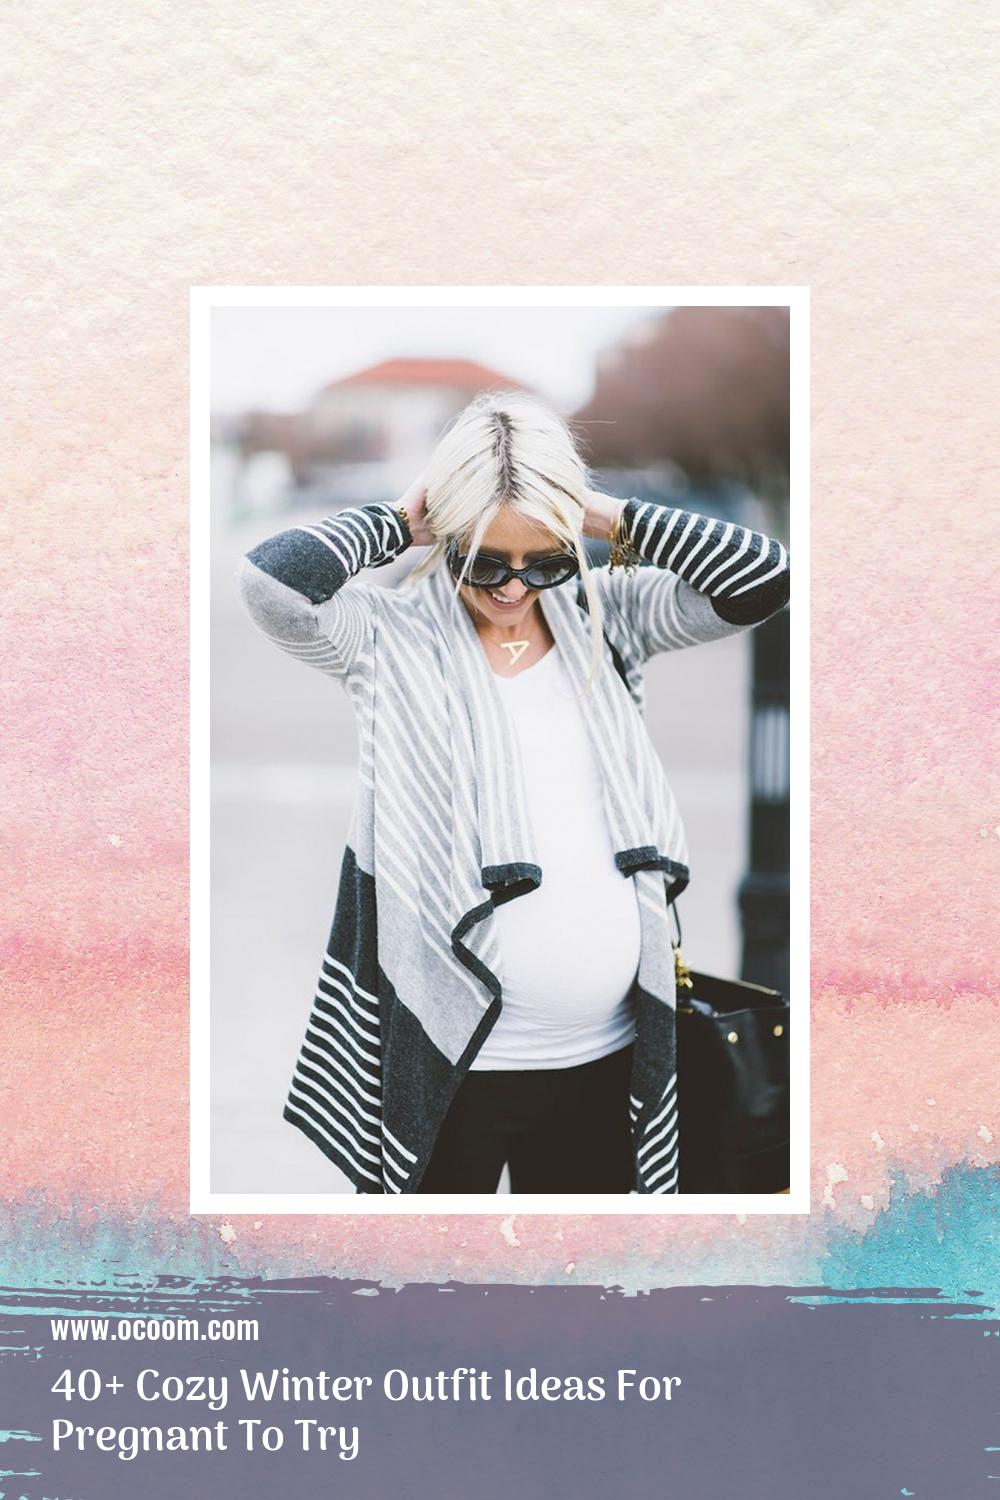 40+ Cozy Winter Outfit Ideas For Pregnant To Try 29